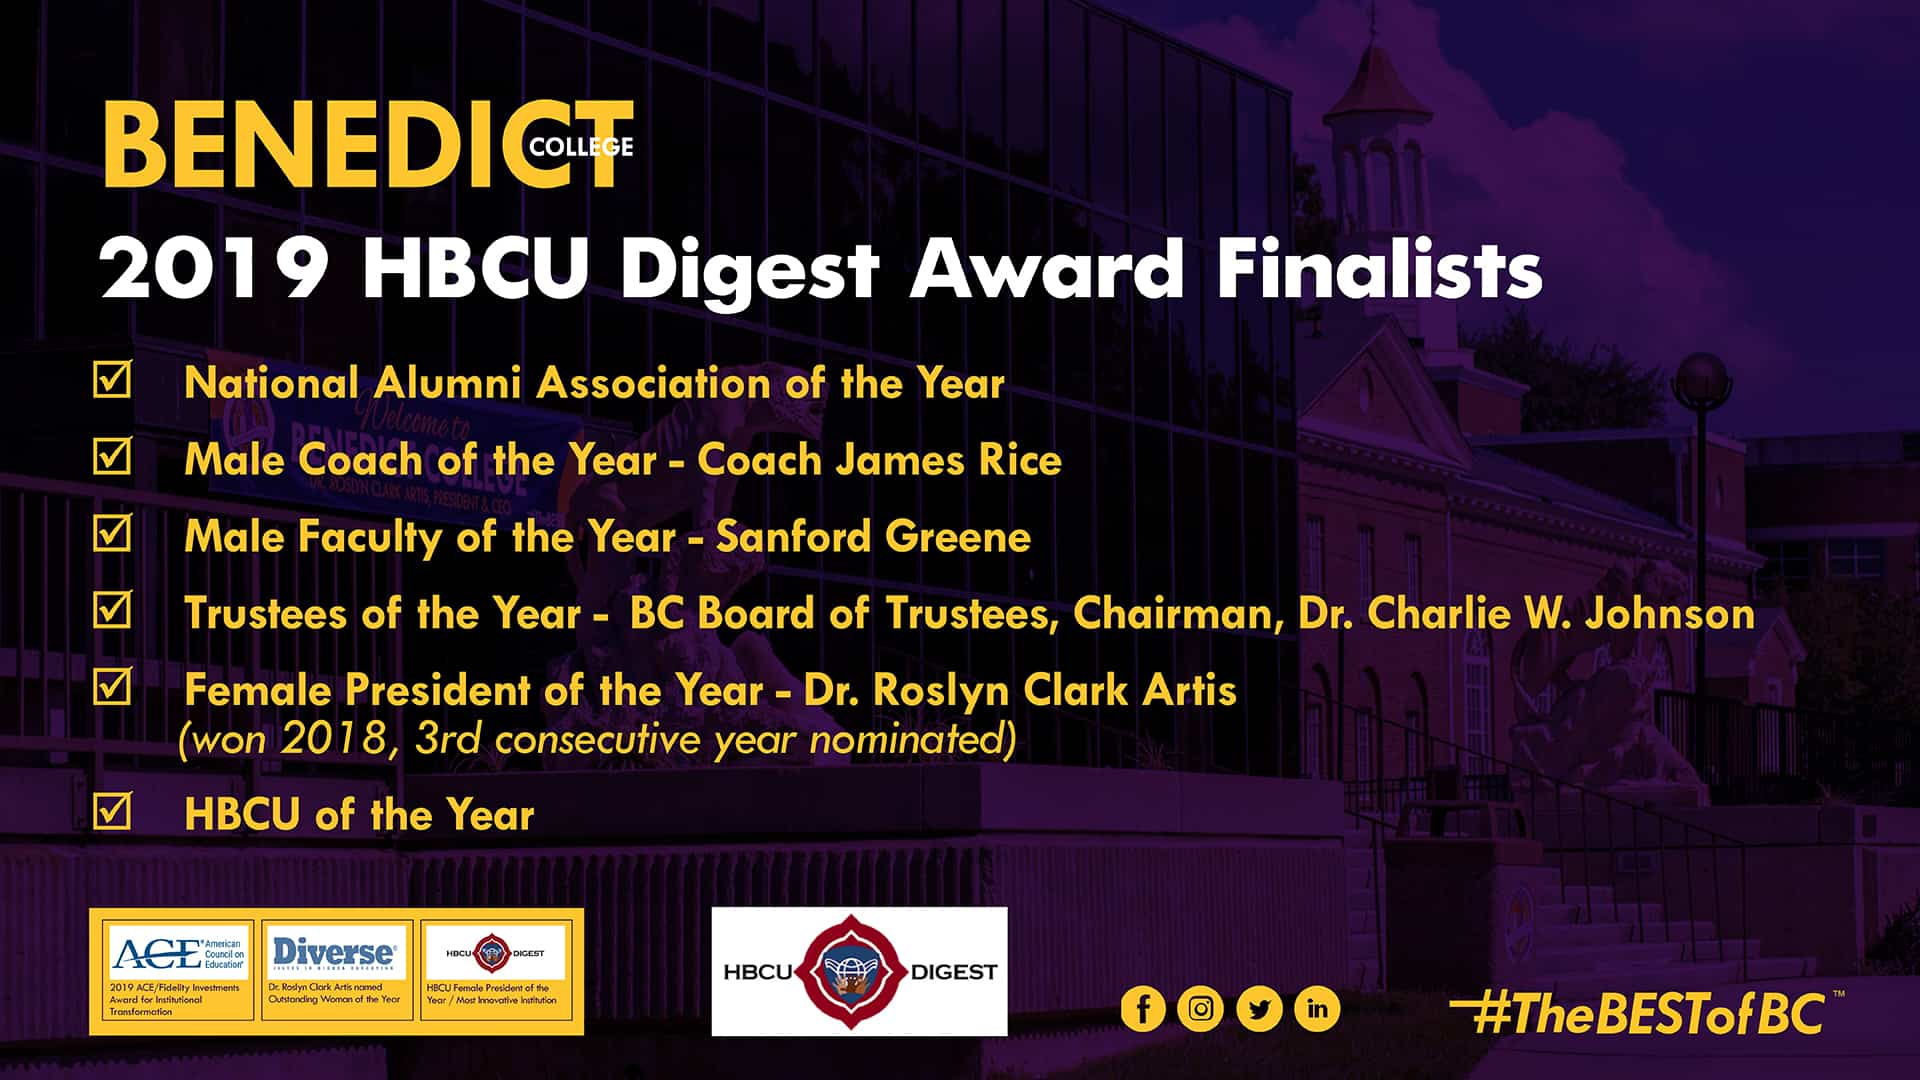 2019 HBCU Digest Award Finalists   Benedict College Columbia 1920x1080